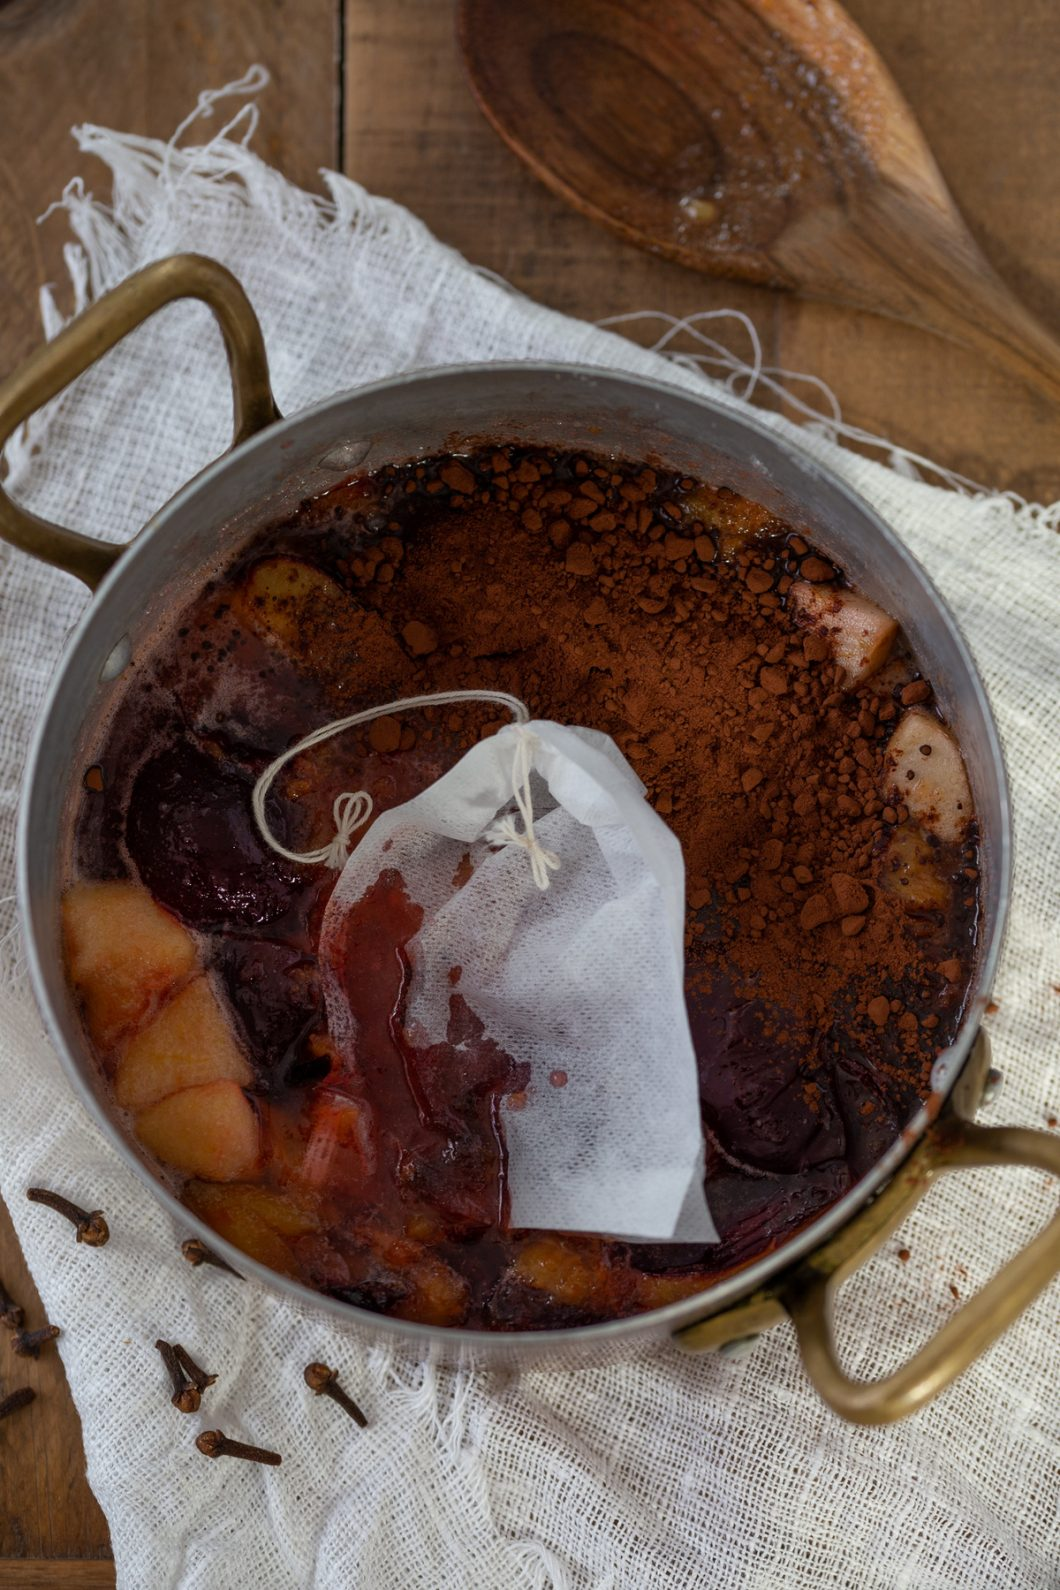 Adding cocoa and a teabag of cloves to the jam.